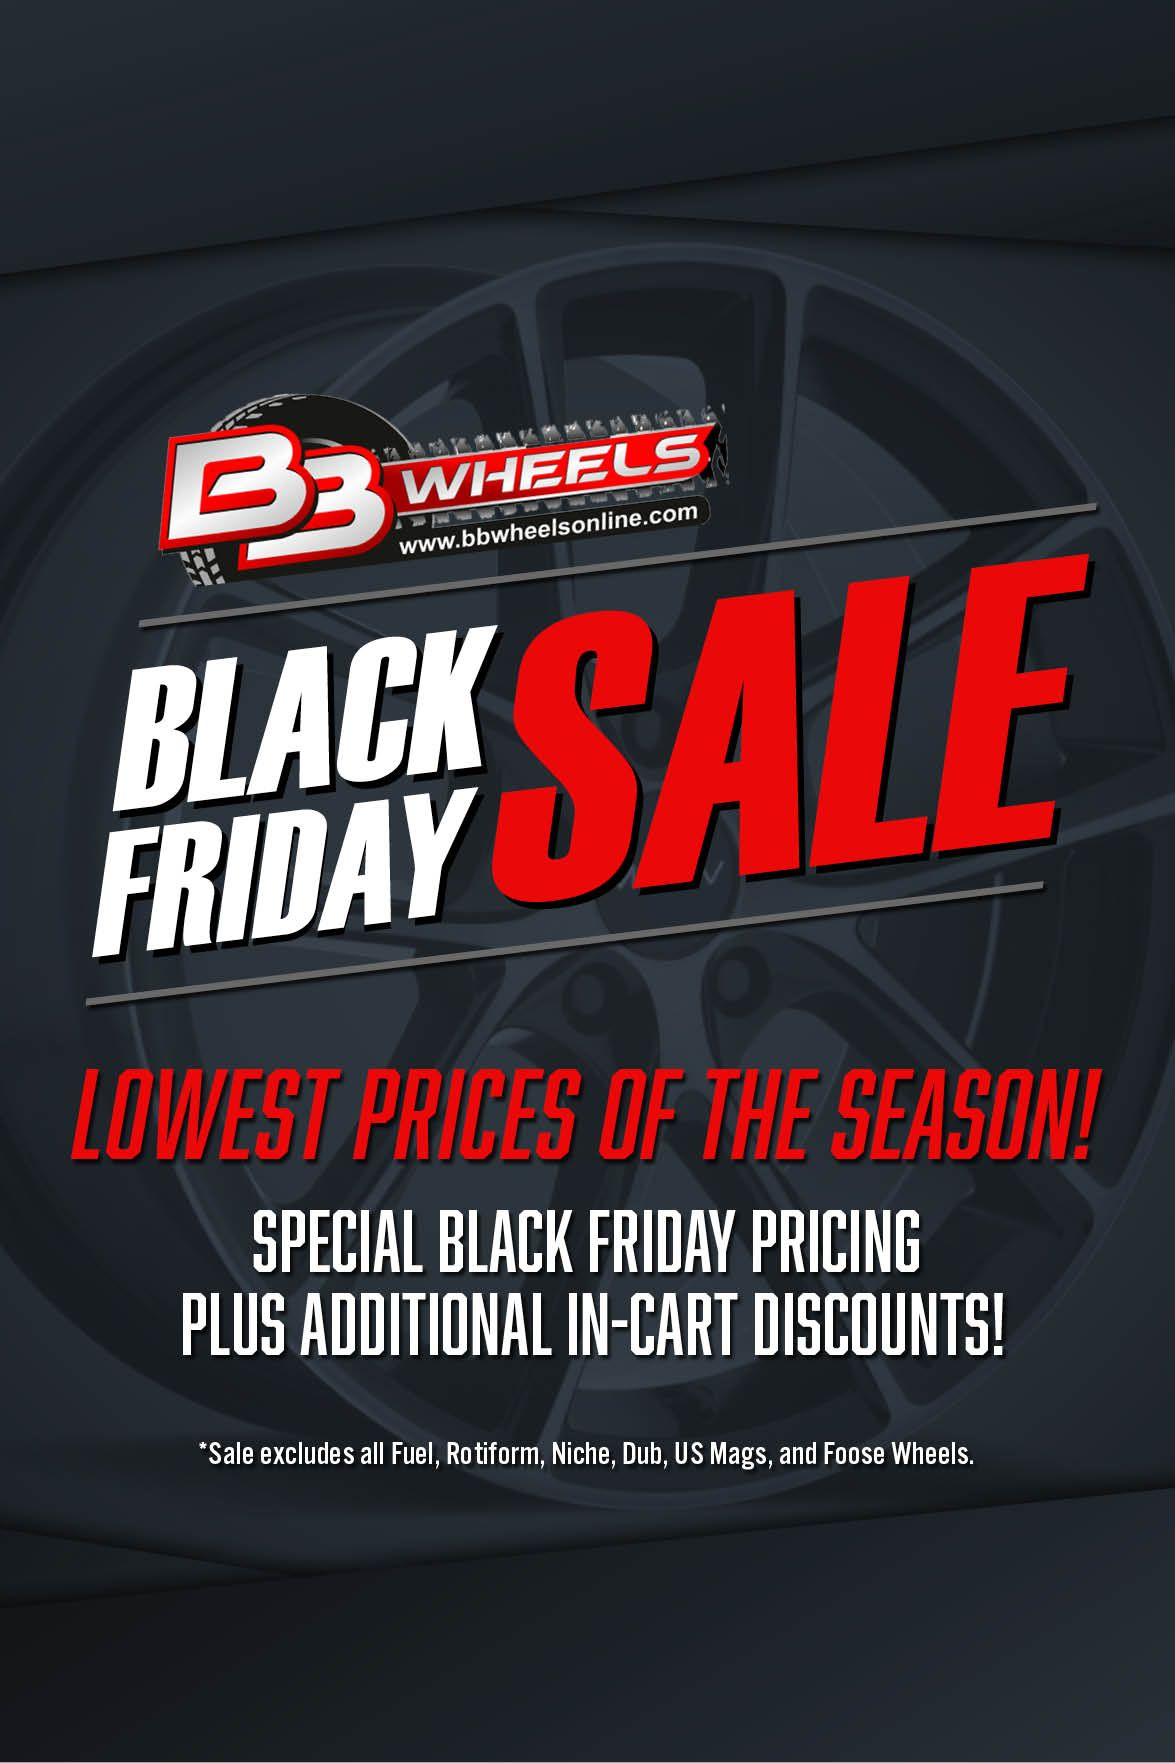 45b2a8eb27aa The Black Friday Sale at BB Wheels is going on right now! Lowest prices of  the season with additional discounts applied at checkout. Treat yourself to  the ...